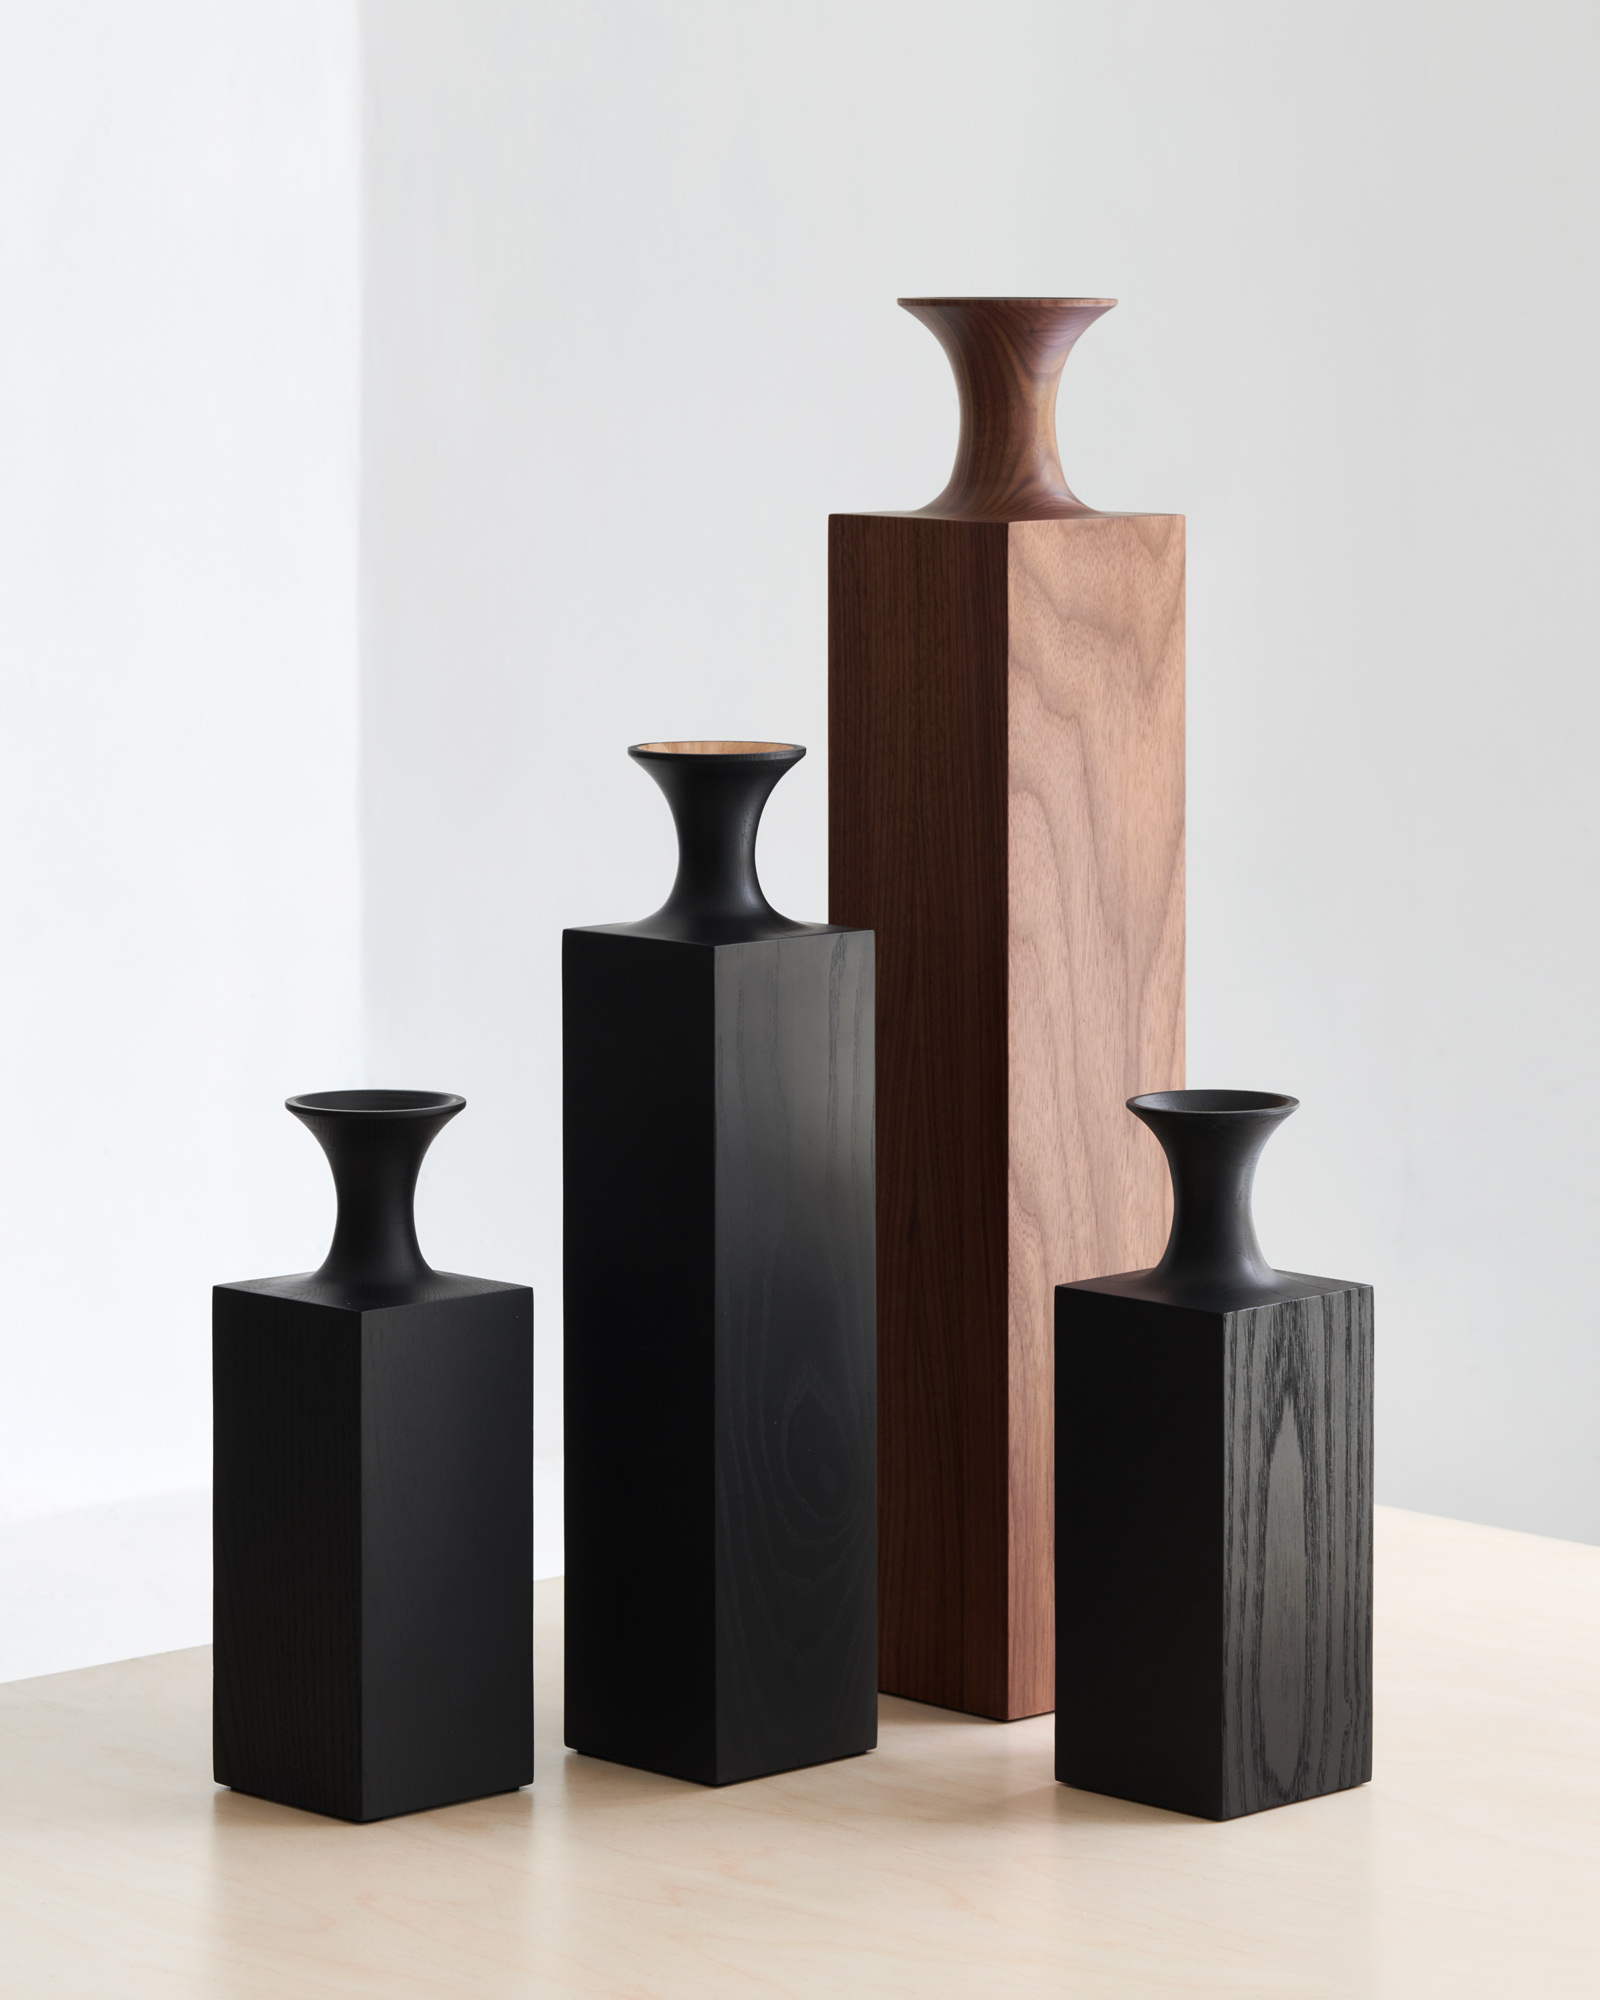 Tasso Wood Vases by Mathieu Delacroix